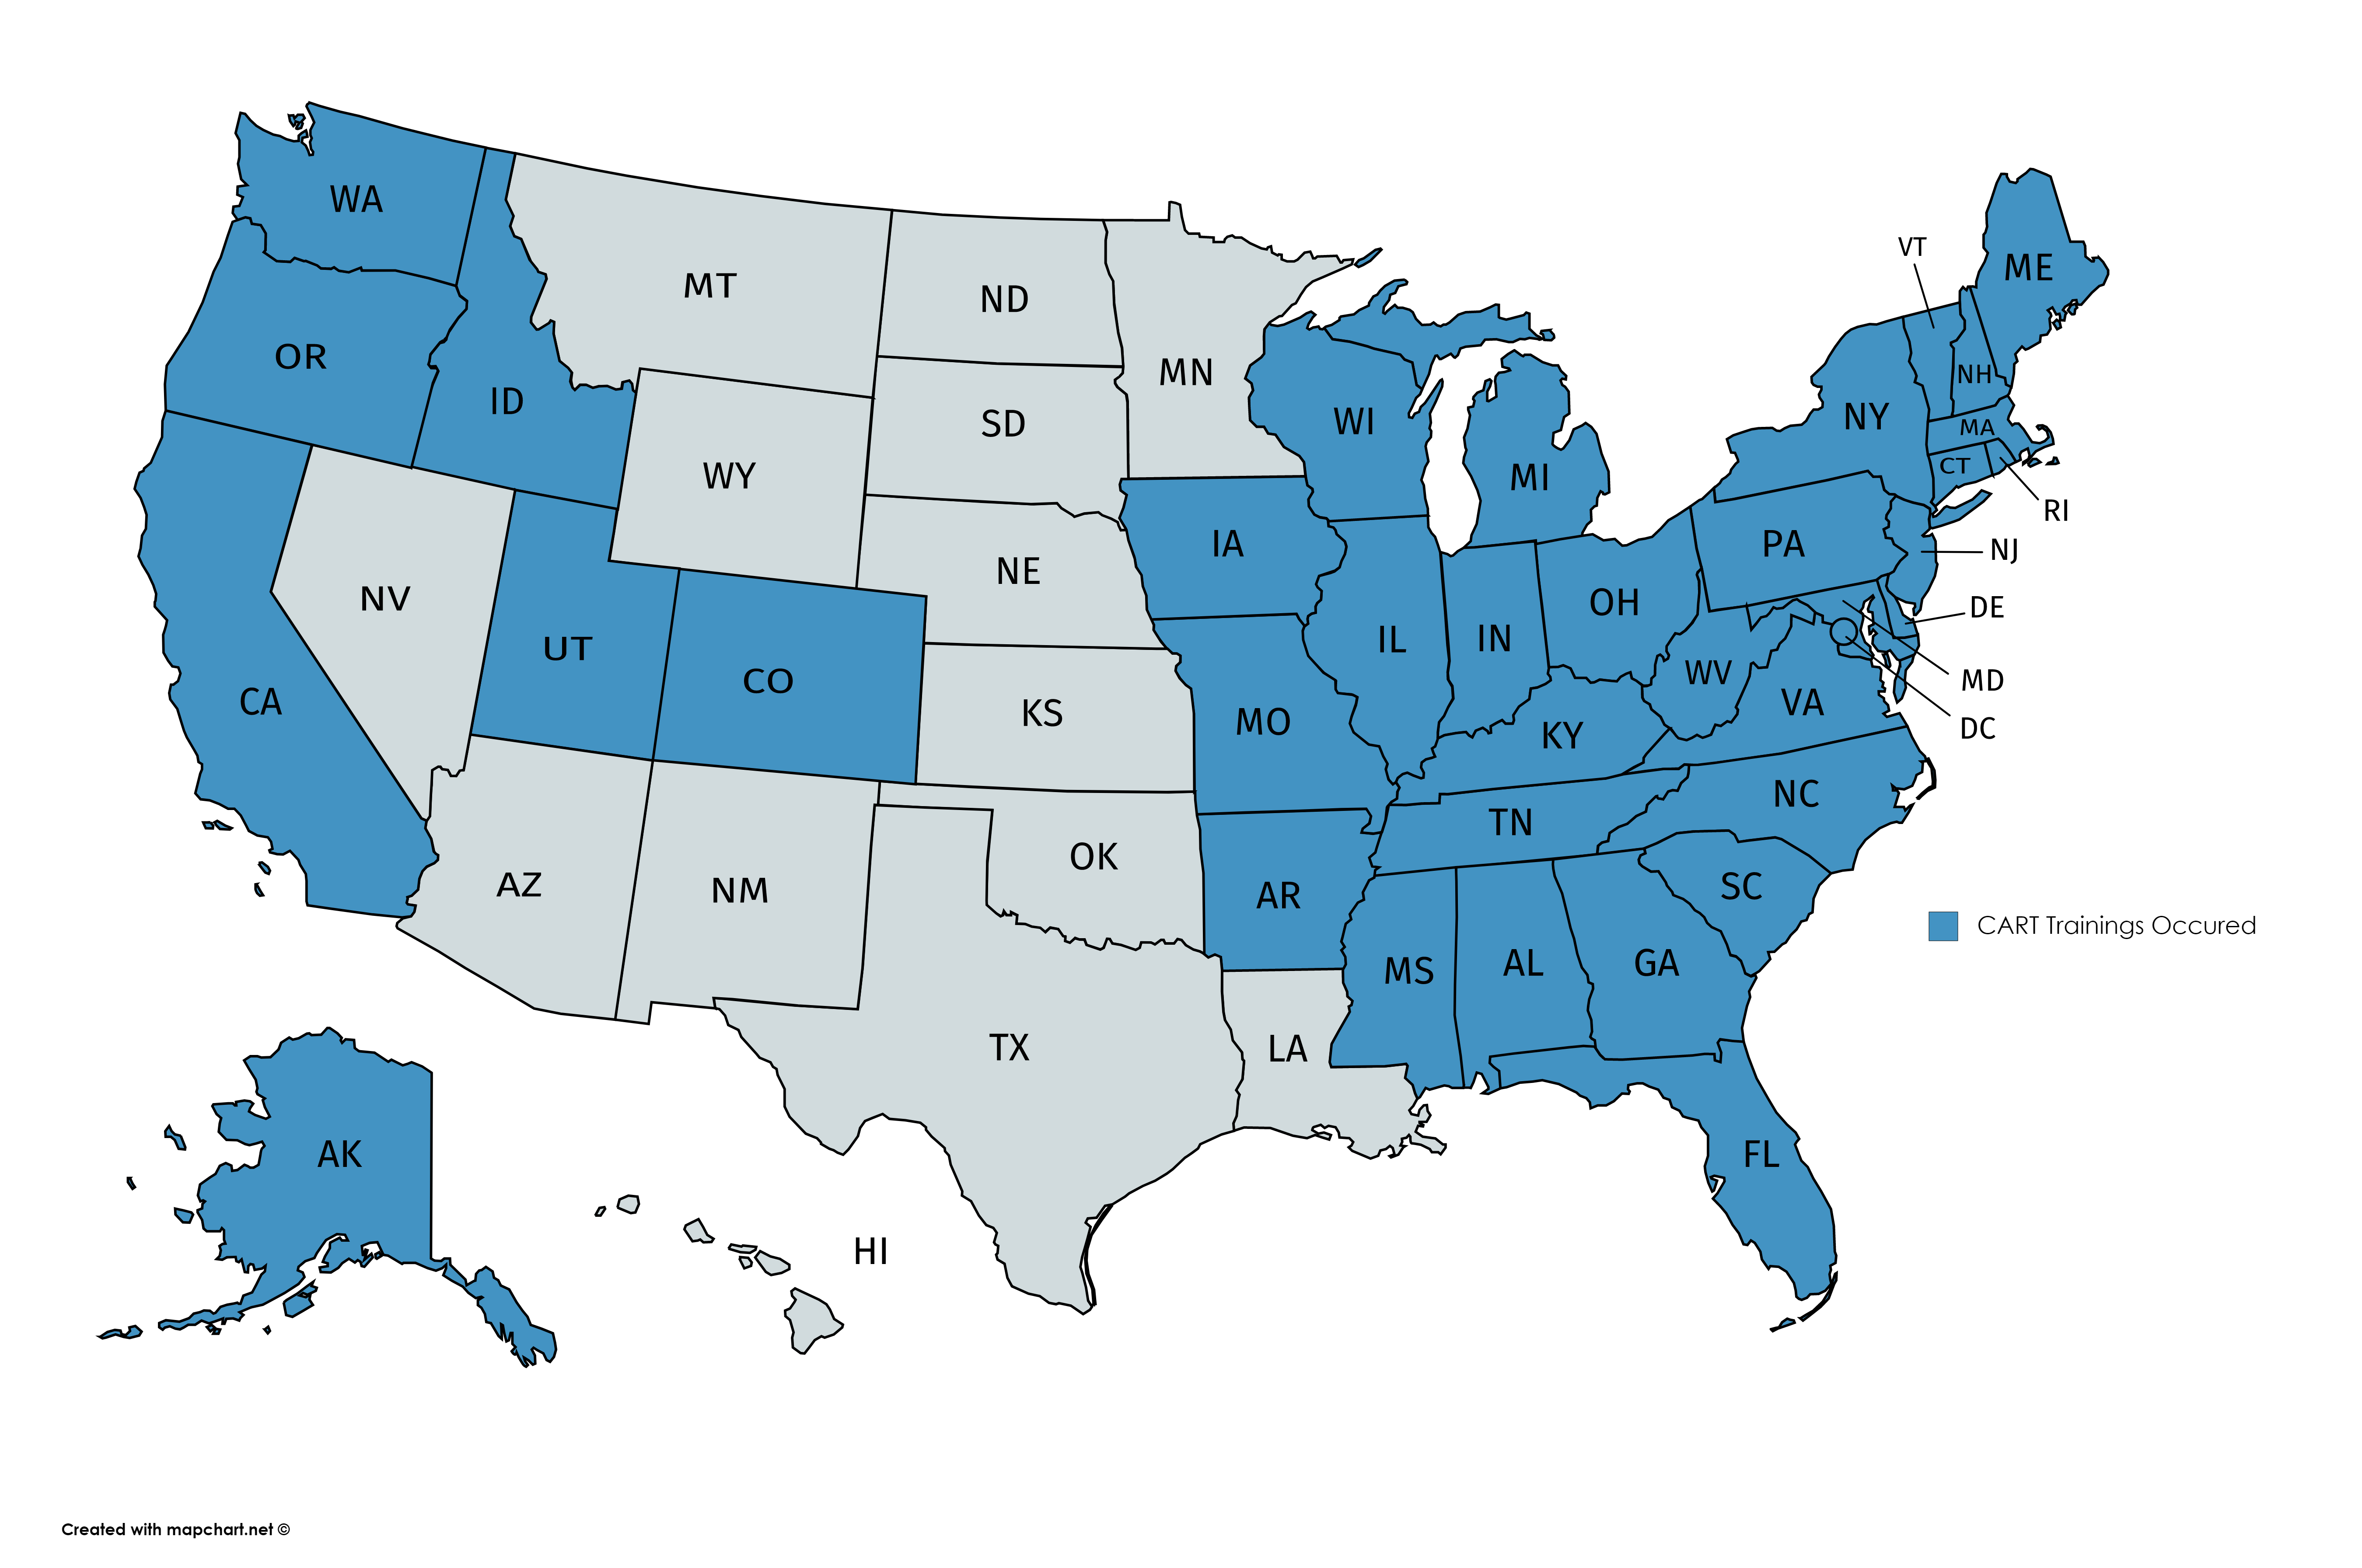 CART Trainings by State